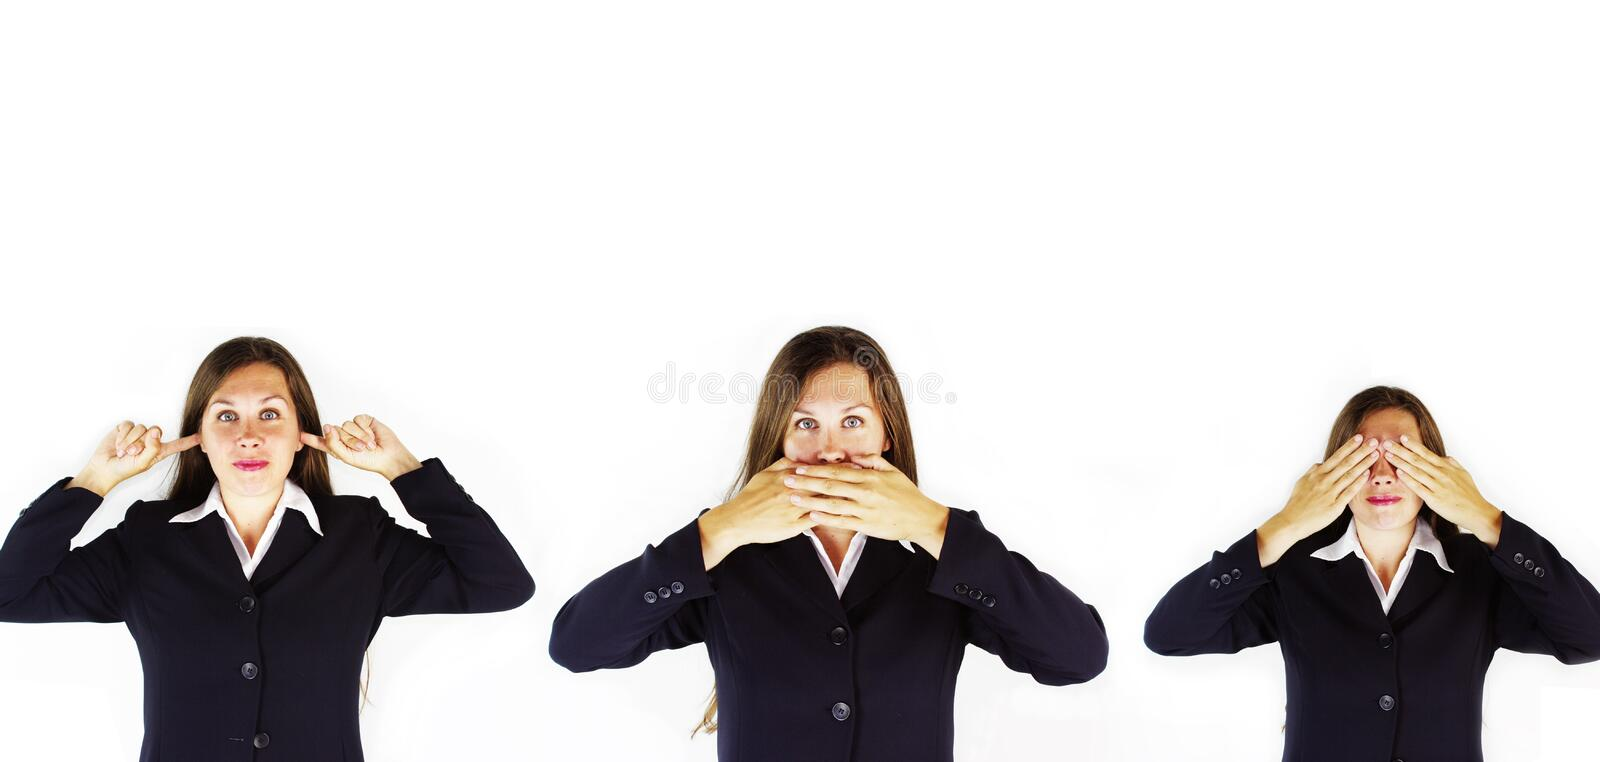 No Evil Business stock images